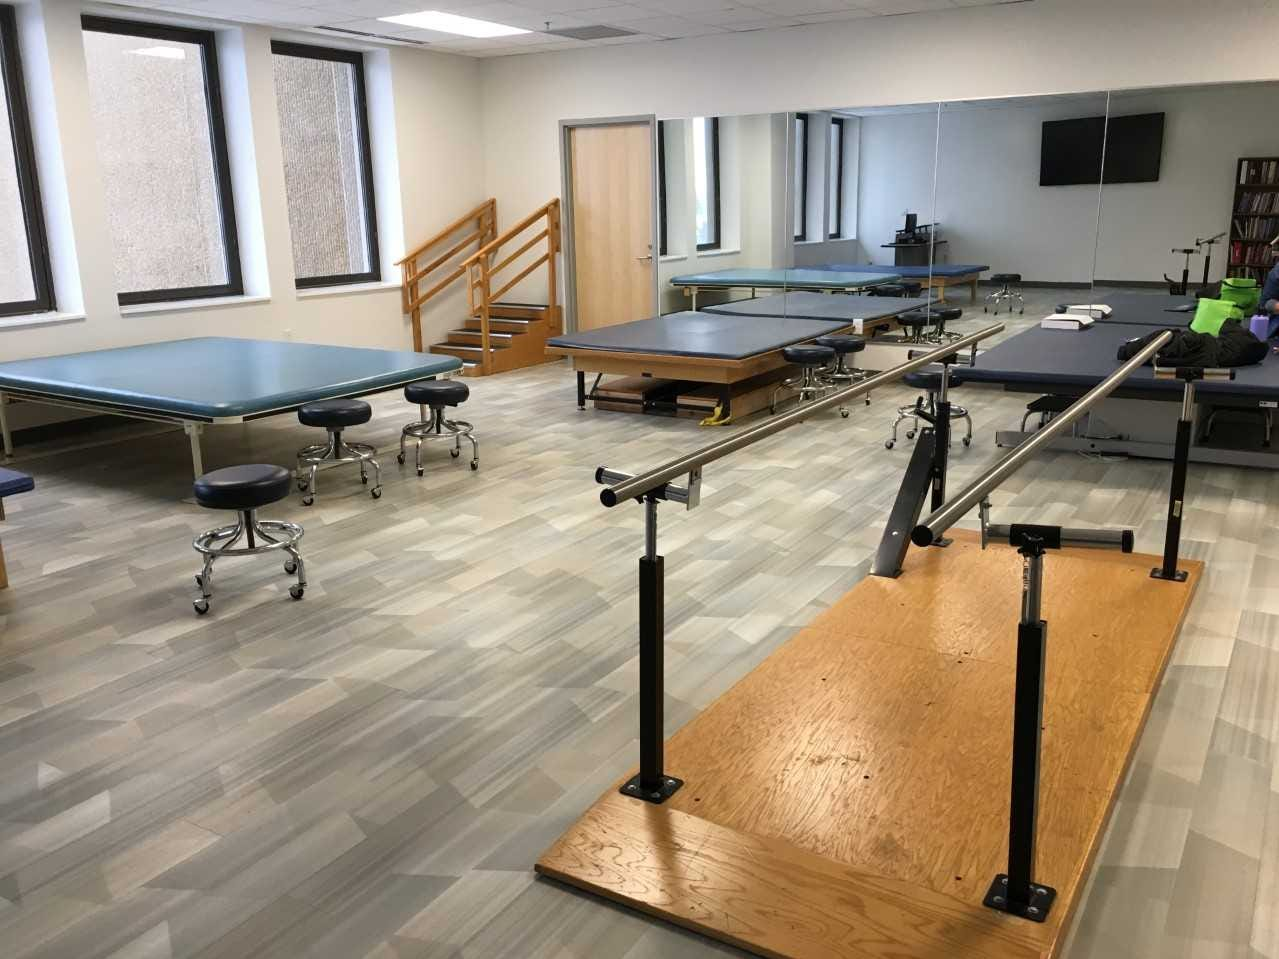 A physical therapy classroom at Ivy Tech Community College in downtown Muncie.